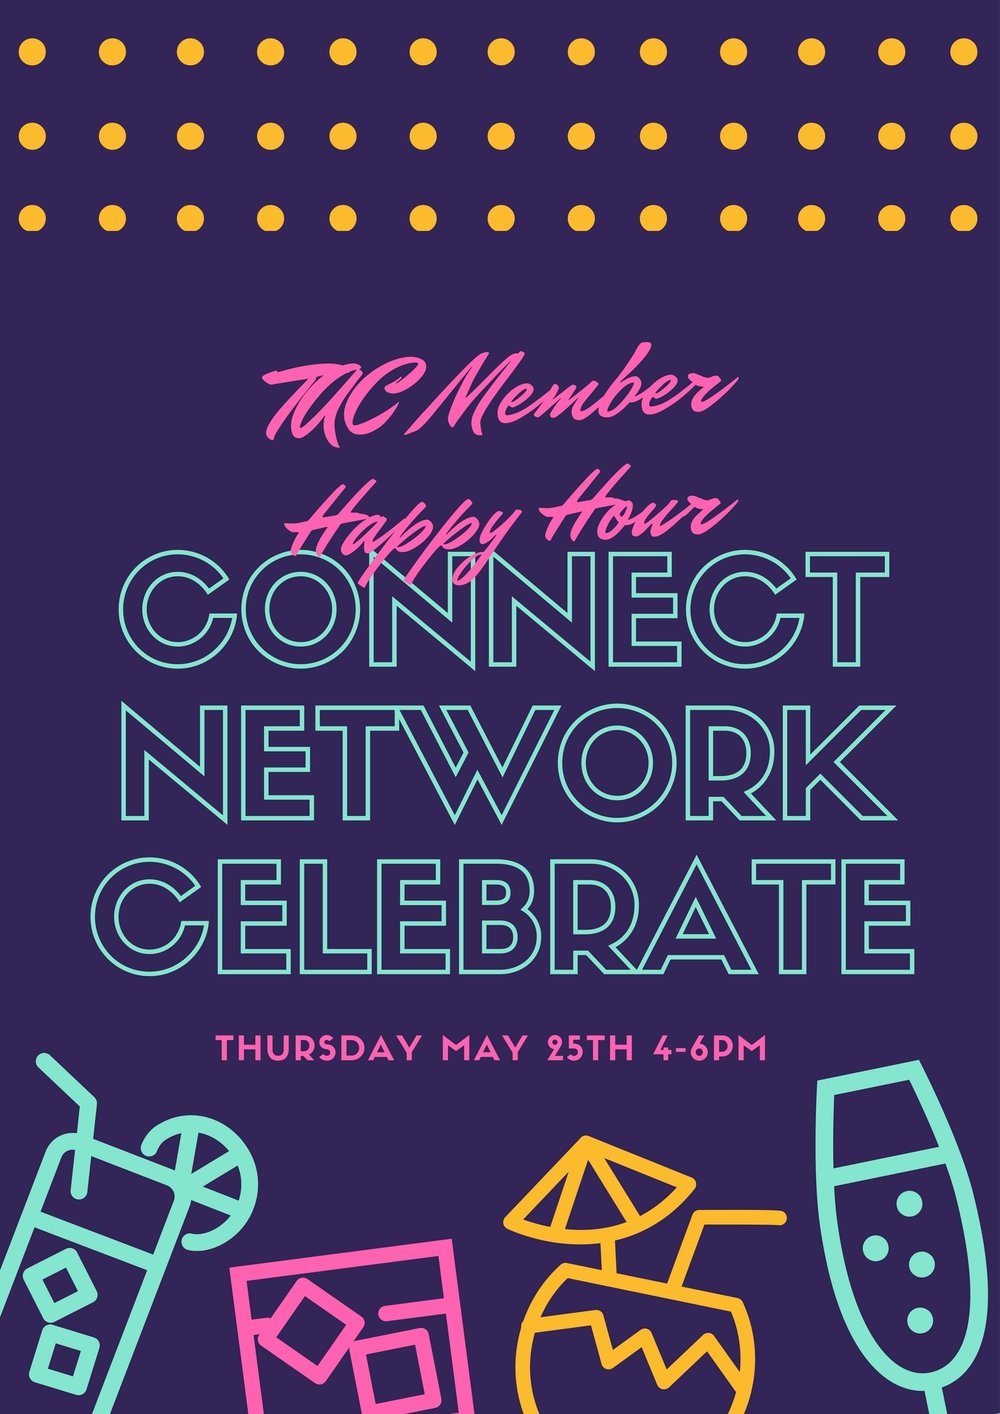 TAC Member Happy Hour